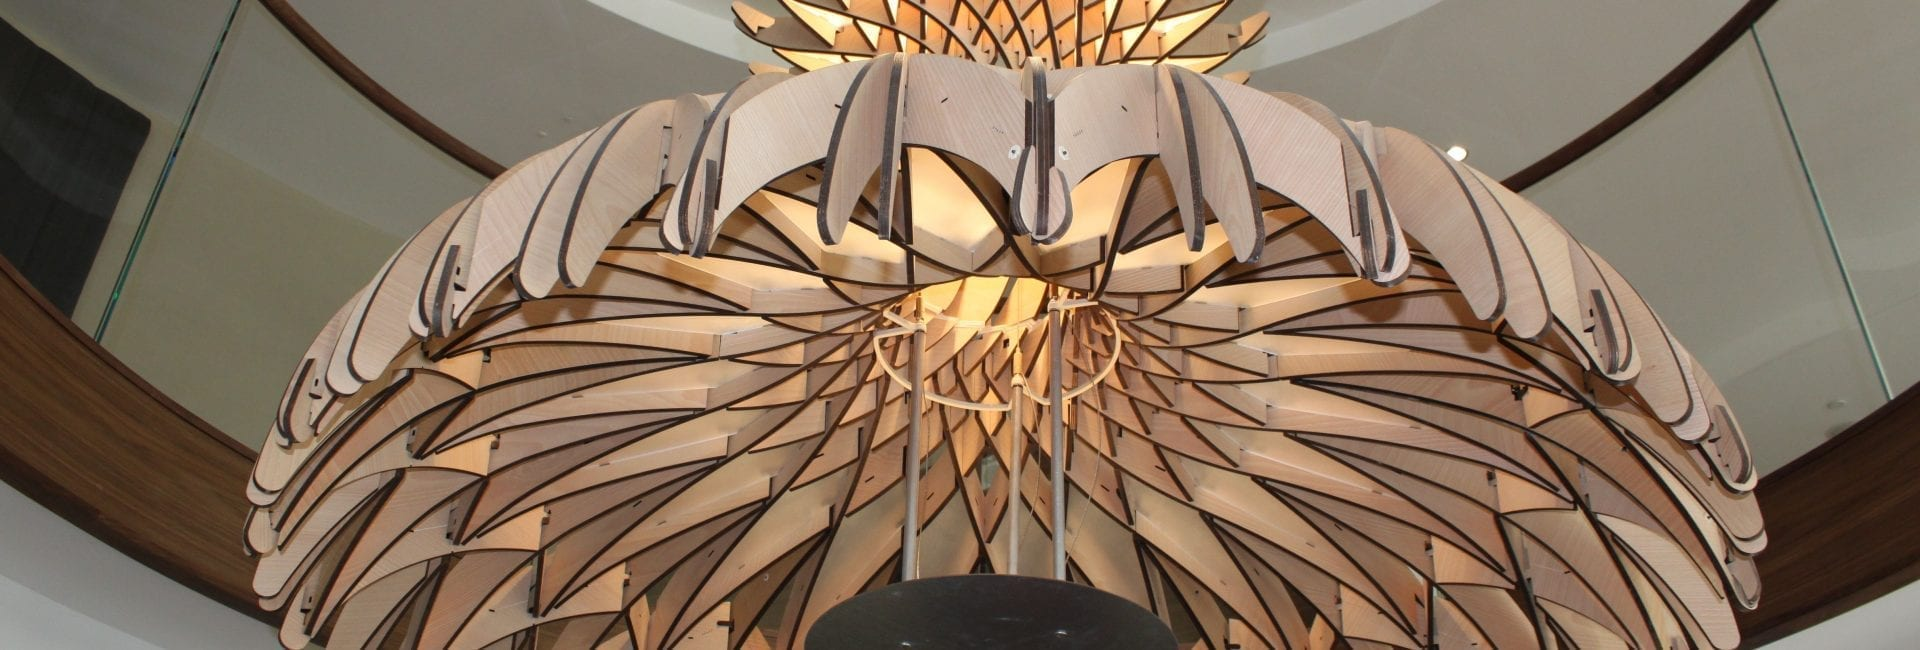 Close up of carved wood chandelier at Union Place